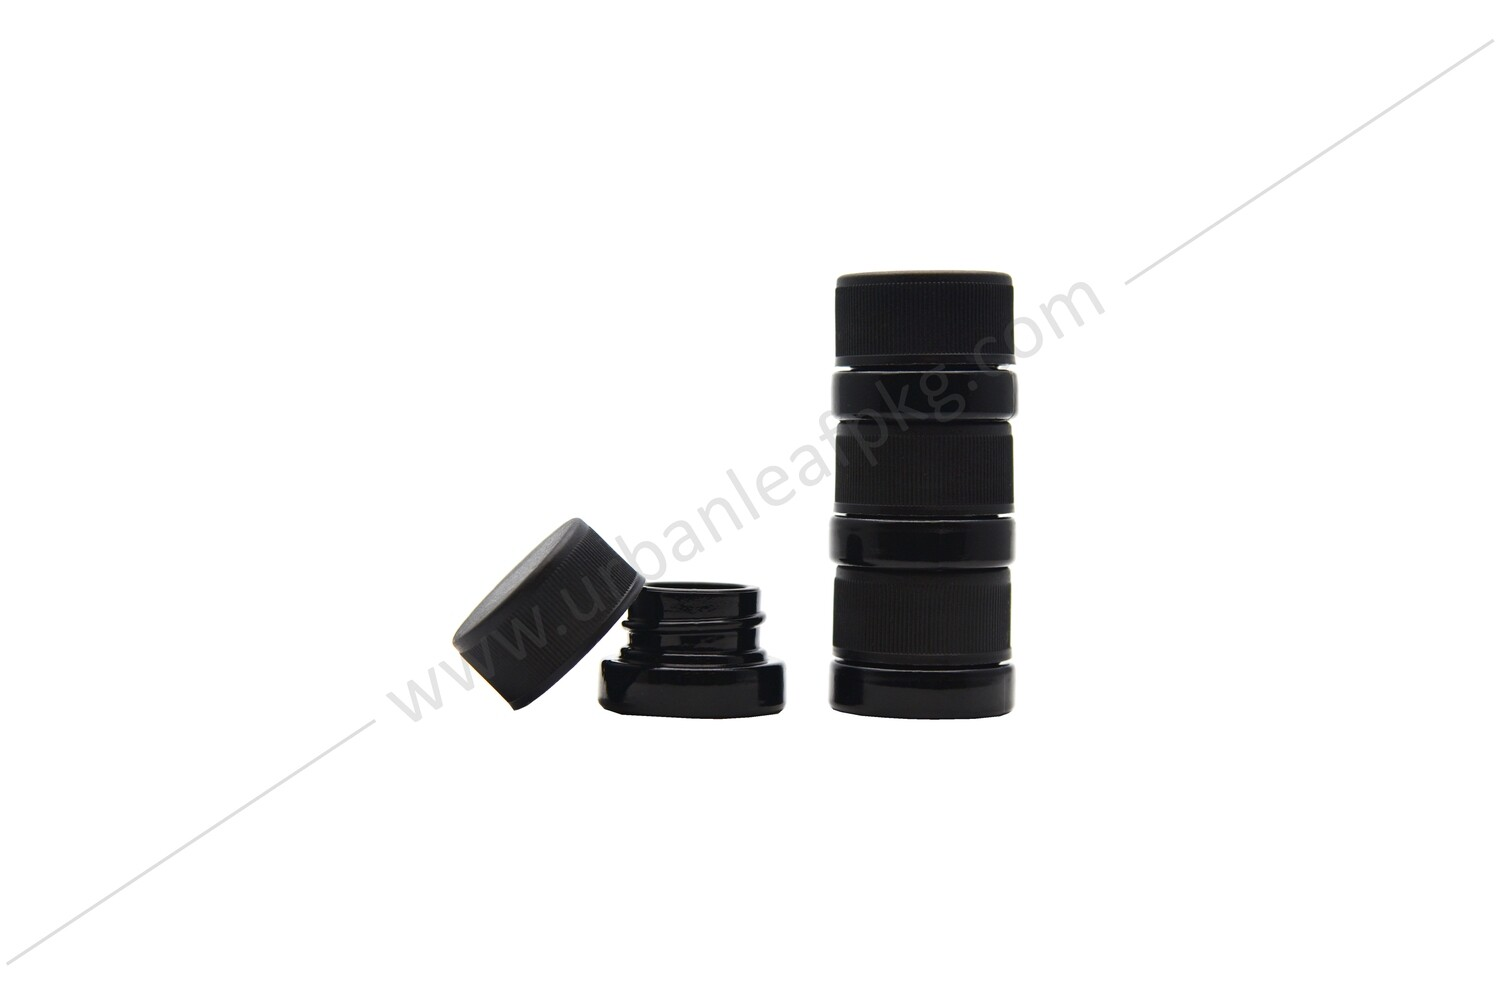 Small Child Resistant Twist Lid Black Glass Jar for Concentrates